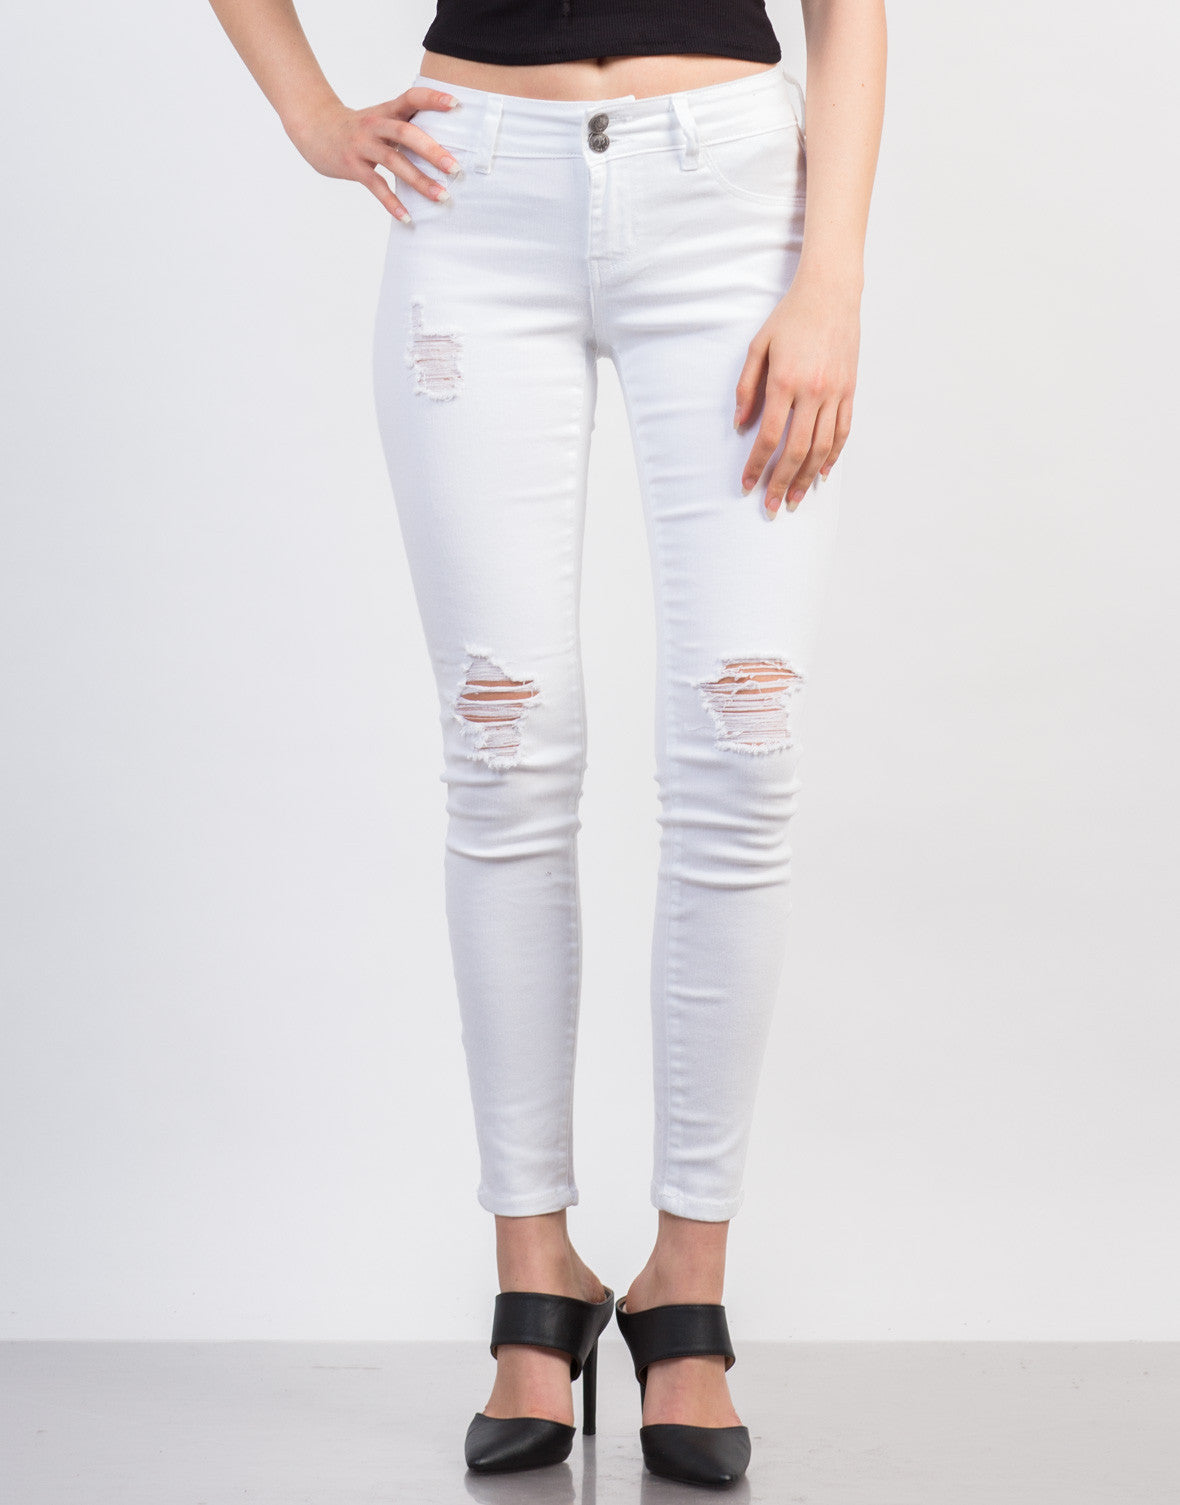 Shopping We Tested 24 Pairs Of Affordable Skinny Jeans And These Are The Best. We tested 24 pairs of jeans from Old Navy, H&M, Forever 21, Target, and American Eagle to find out which brand's.